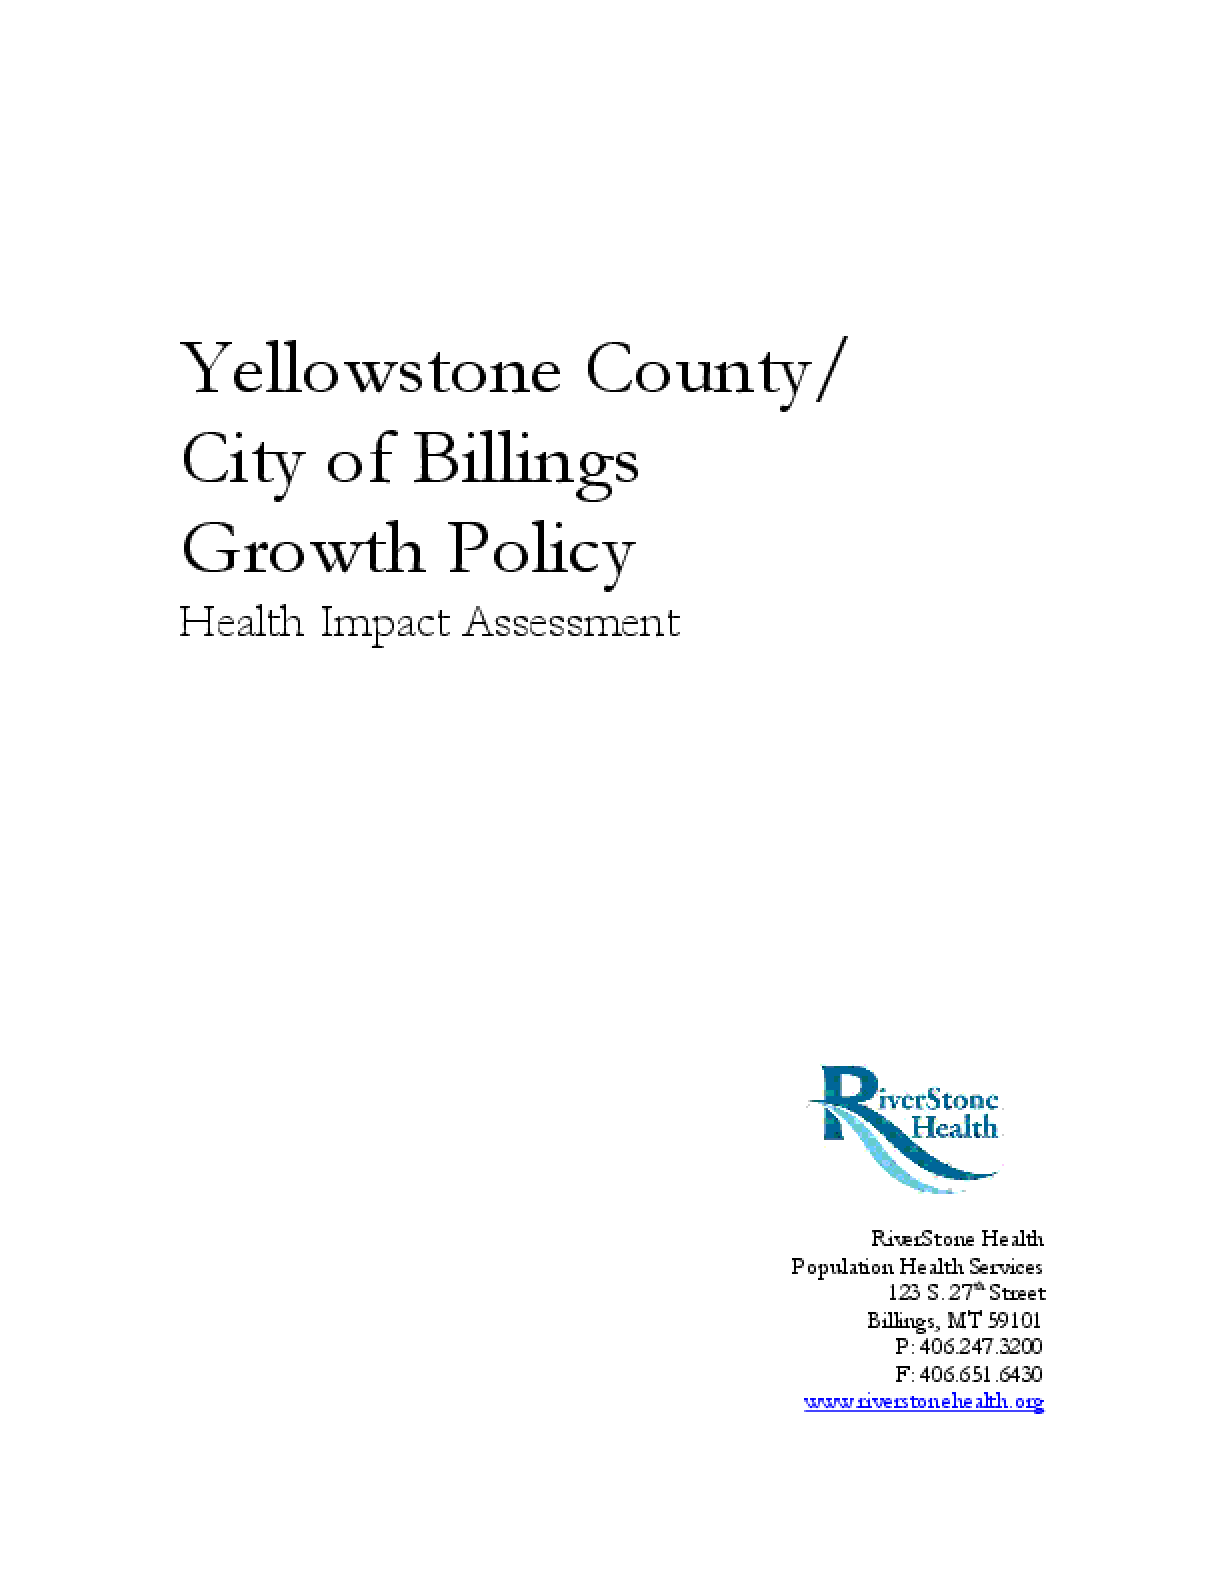 Yellowstone County/City of Billings Growth Policy Health Impact Assessment